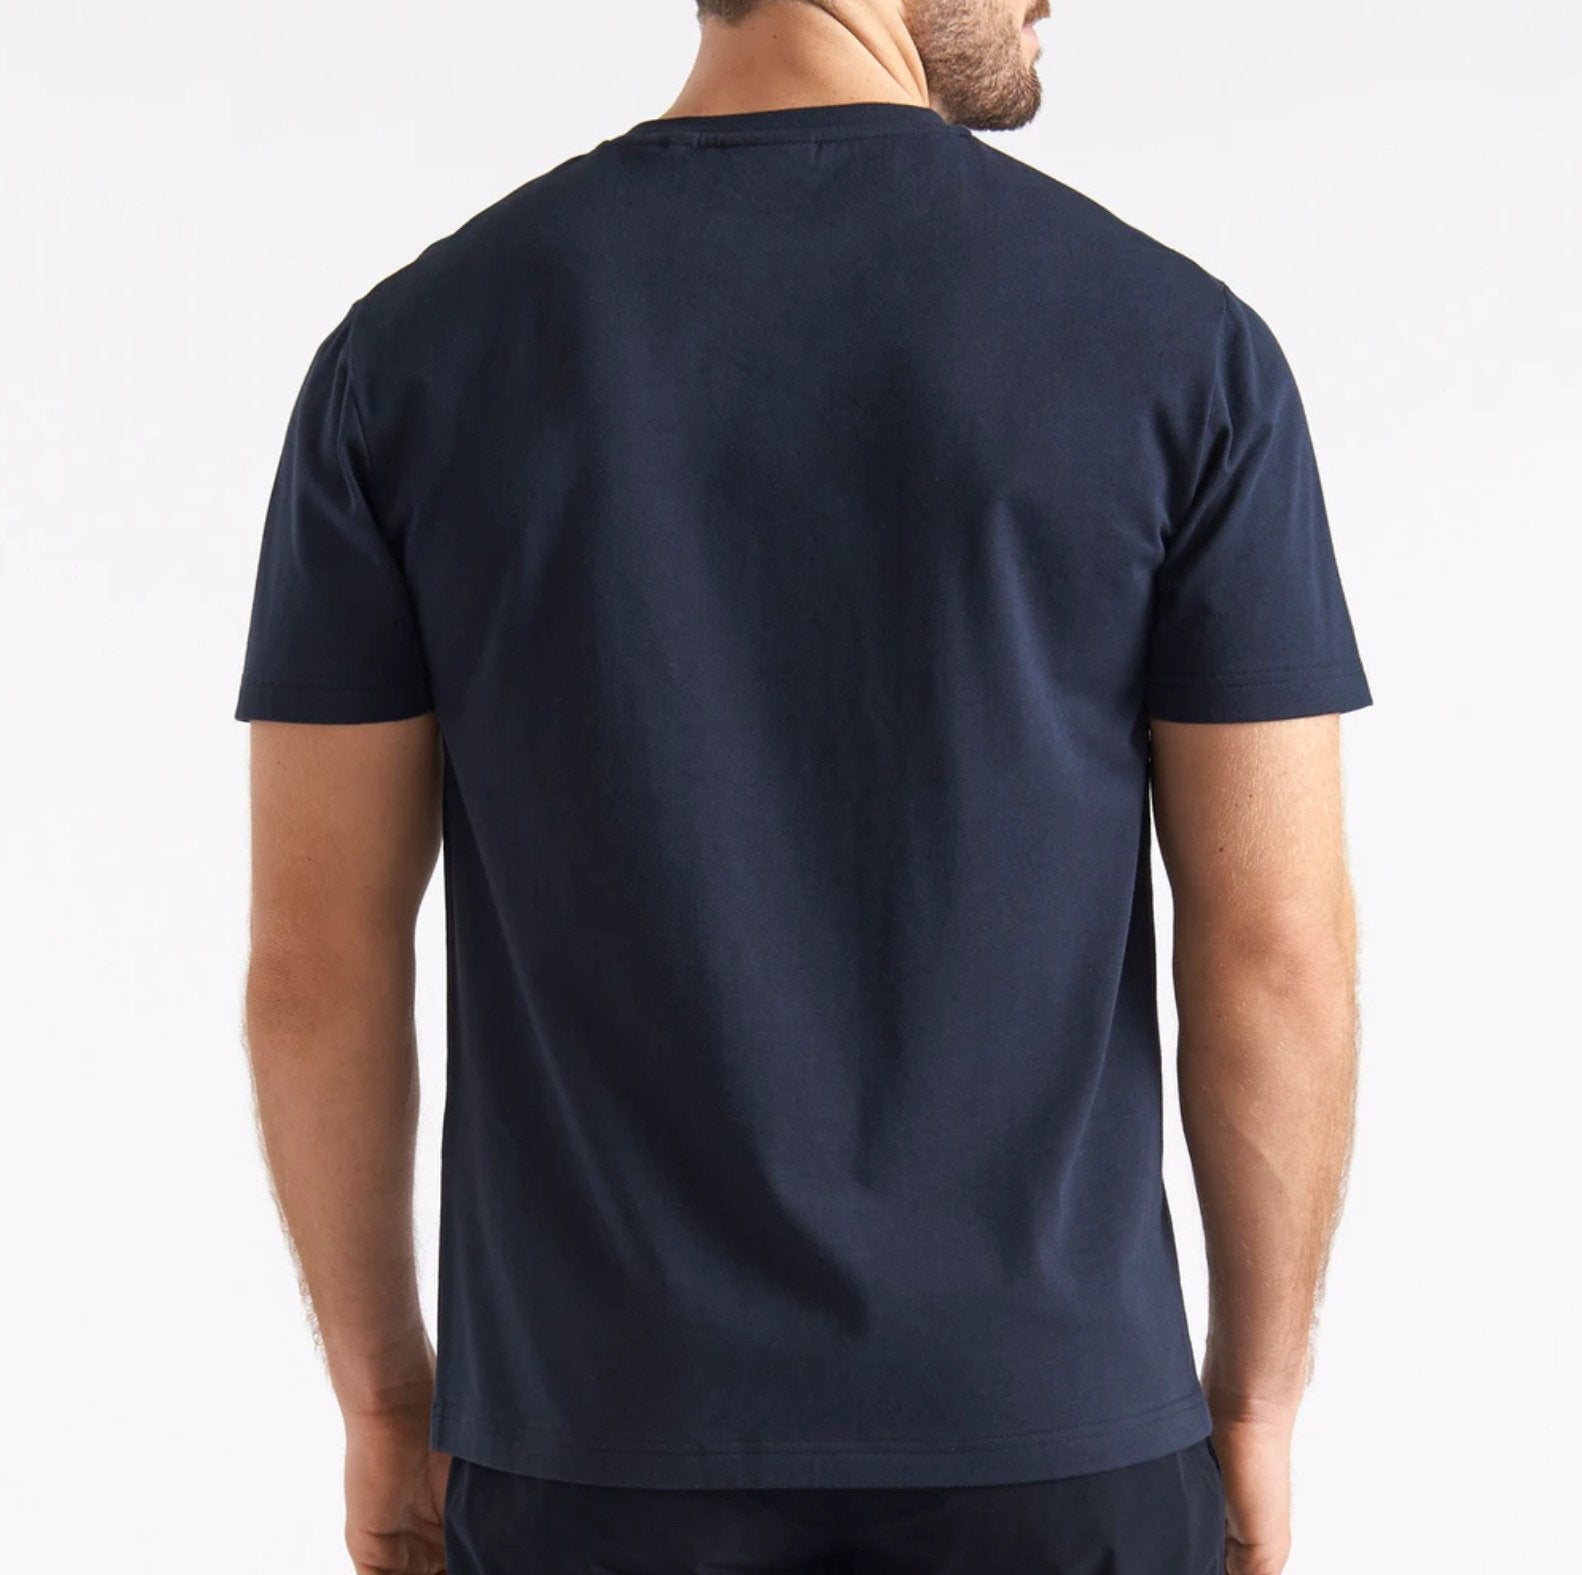 Henri-Lloyd Fleet T-Shirt for Men, Medium - MGworld